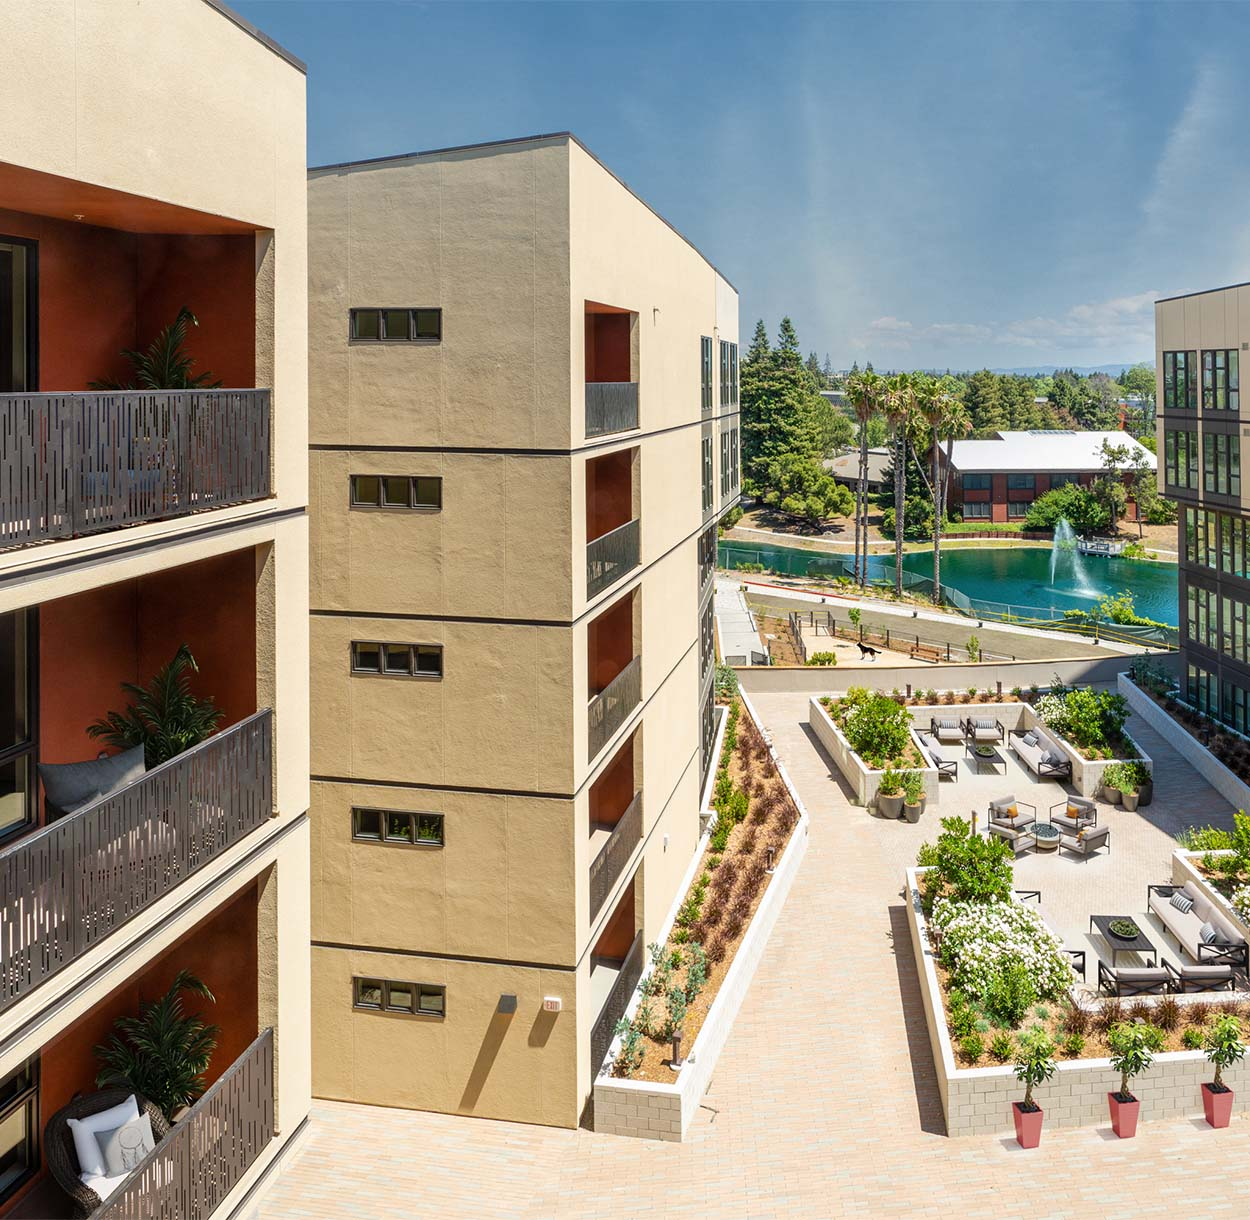 1250 Lakeside apartments overlooking outdoor lounge with lush landscaping and furniture.